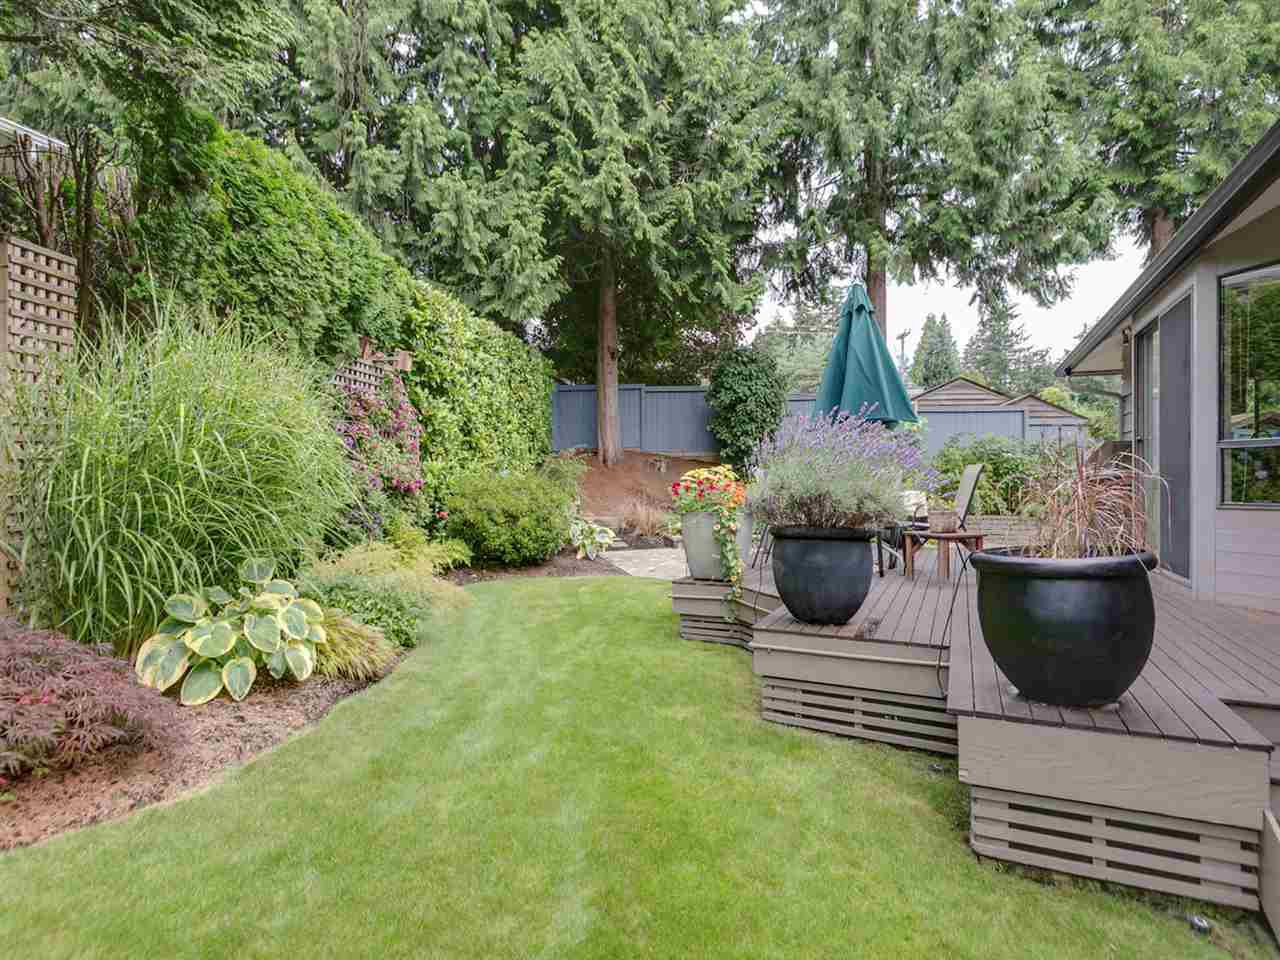 Photo 3: Photos: 1959 ALDERLYNN Drive in North Vancouver: Westlynn House for sale : MLS®# R2094199